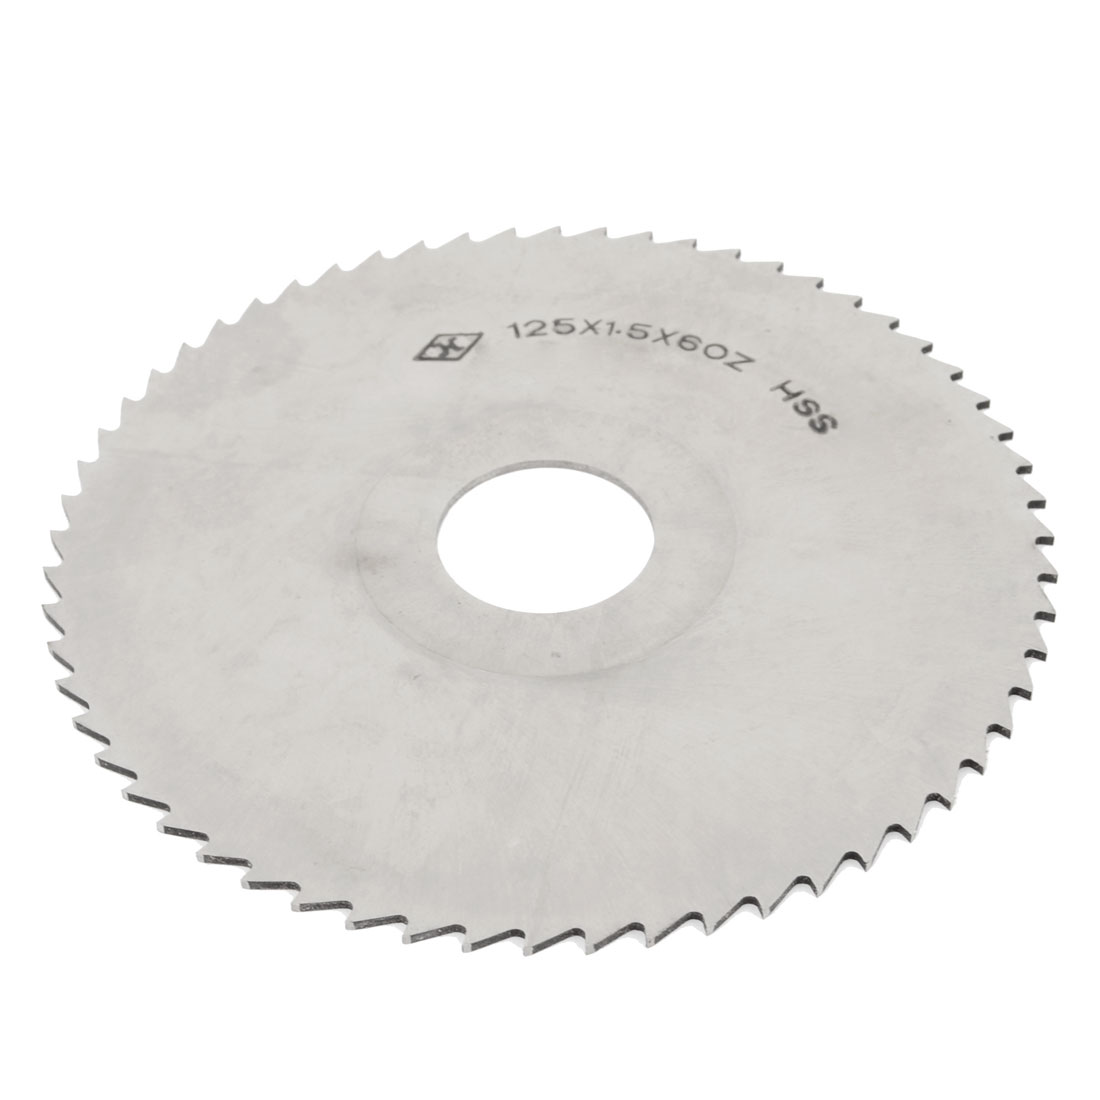 HSS 125mm Diameter 1.5mm Thk 27mm Arbor 60T Milling Slitting Saw Cutter